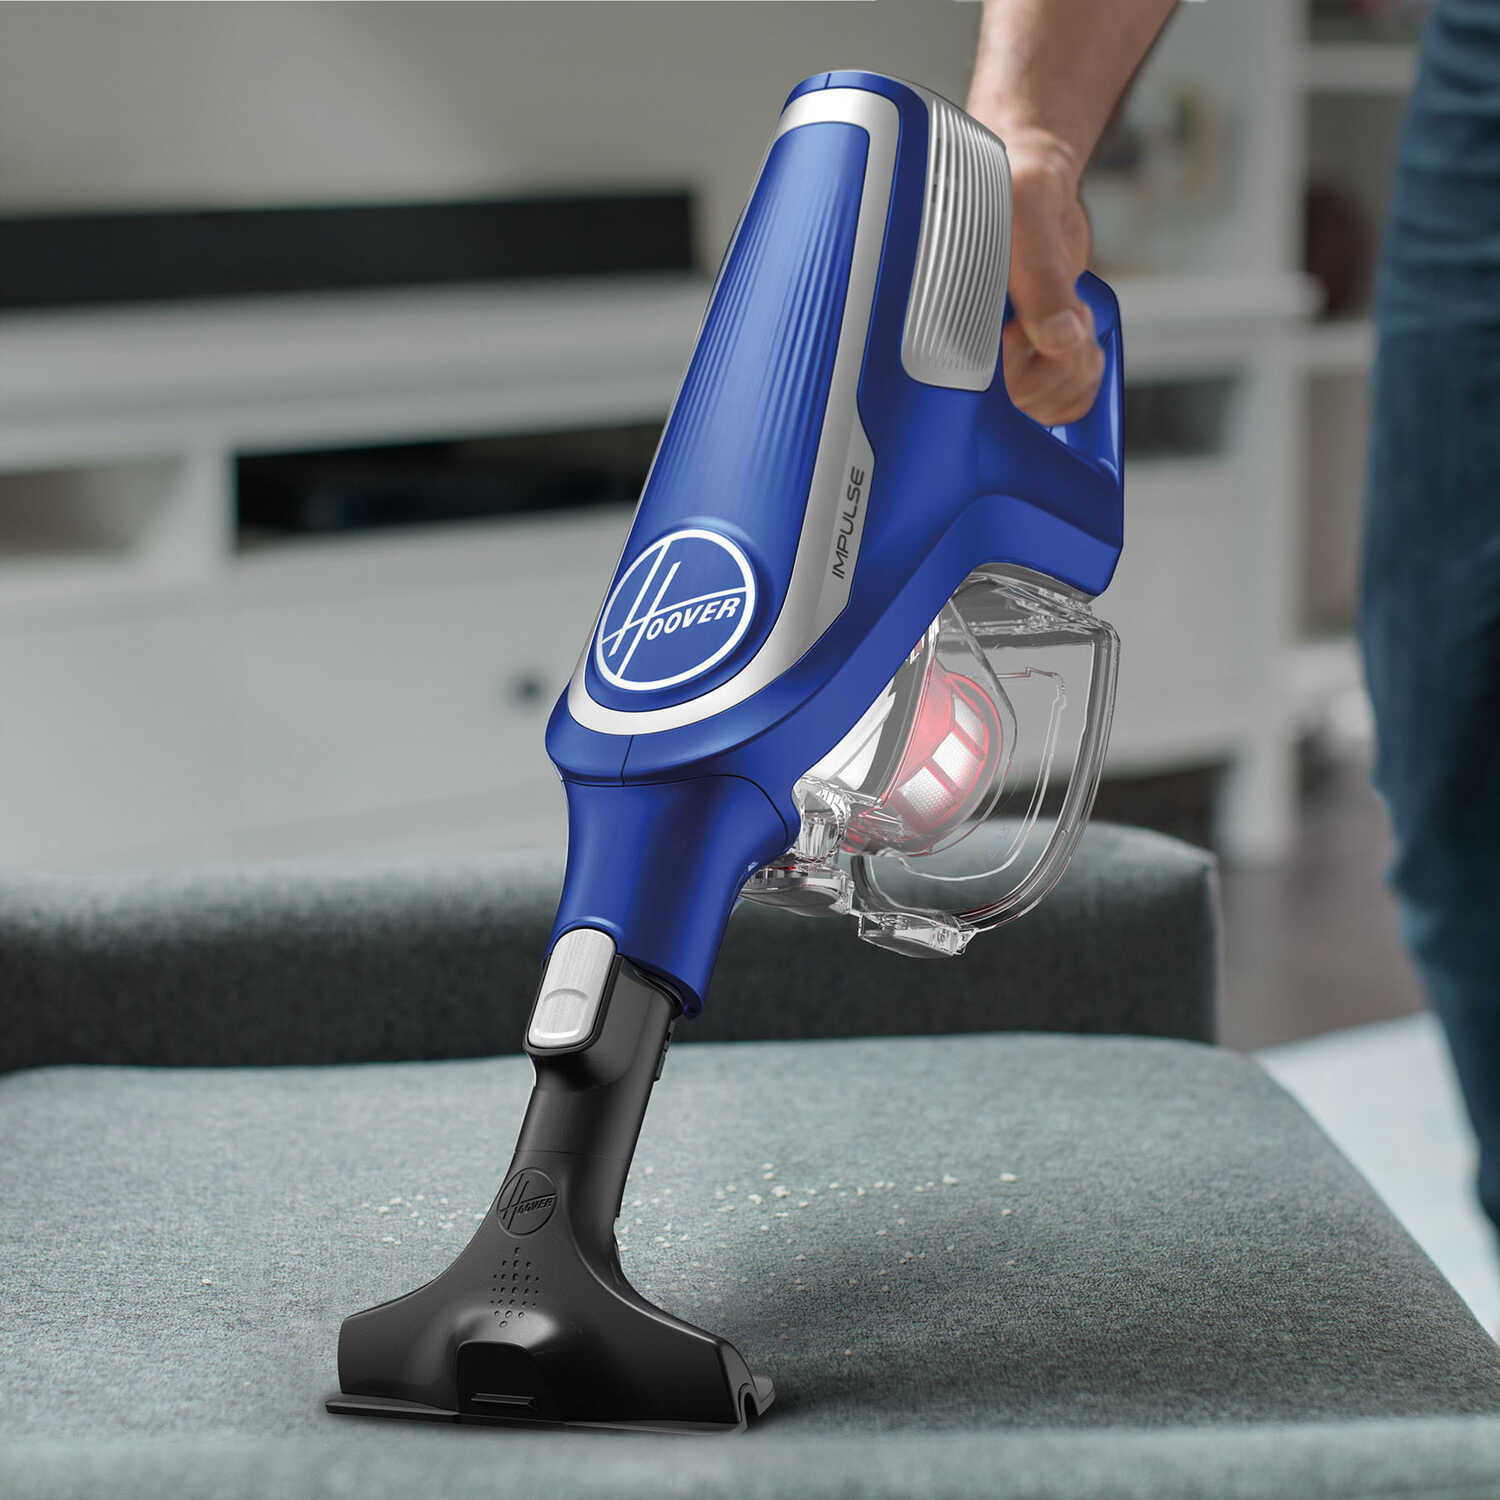 Hoover  Bagless  Cordless  Upright Vacuum  4 amps Blue  Standard